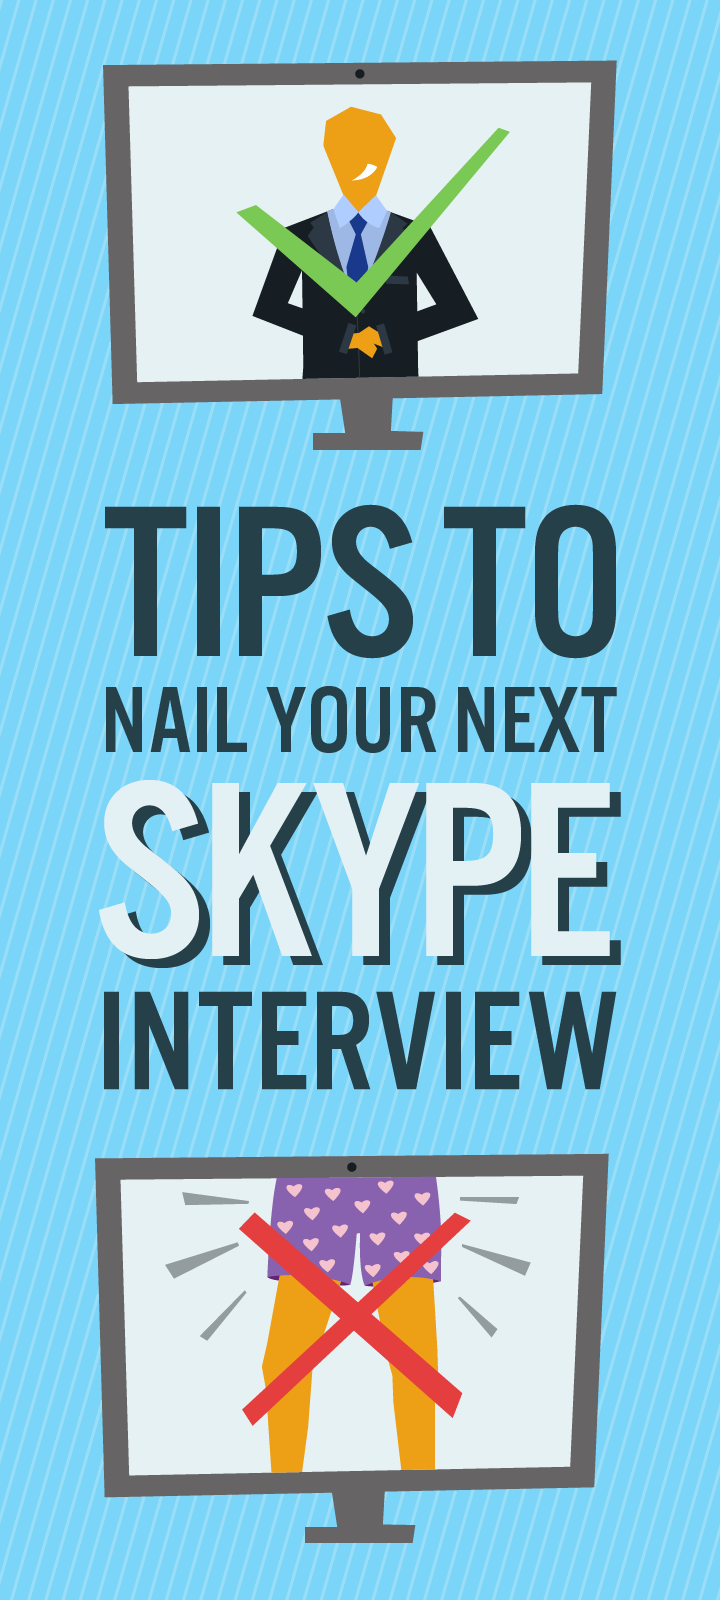 Tips And Tricks For The Skype Job Interview Business And Career